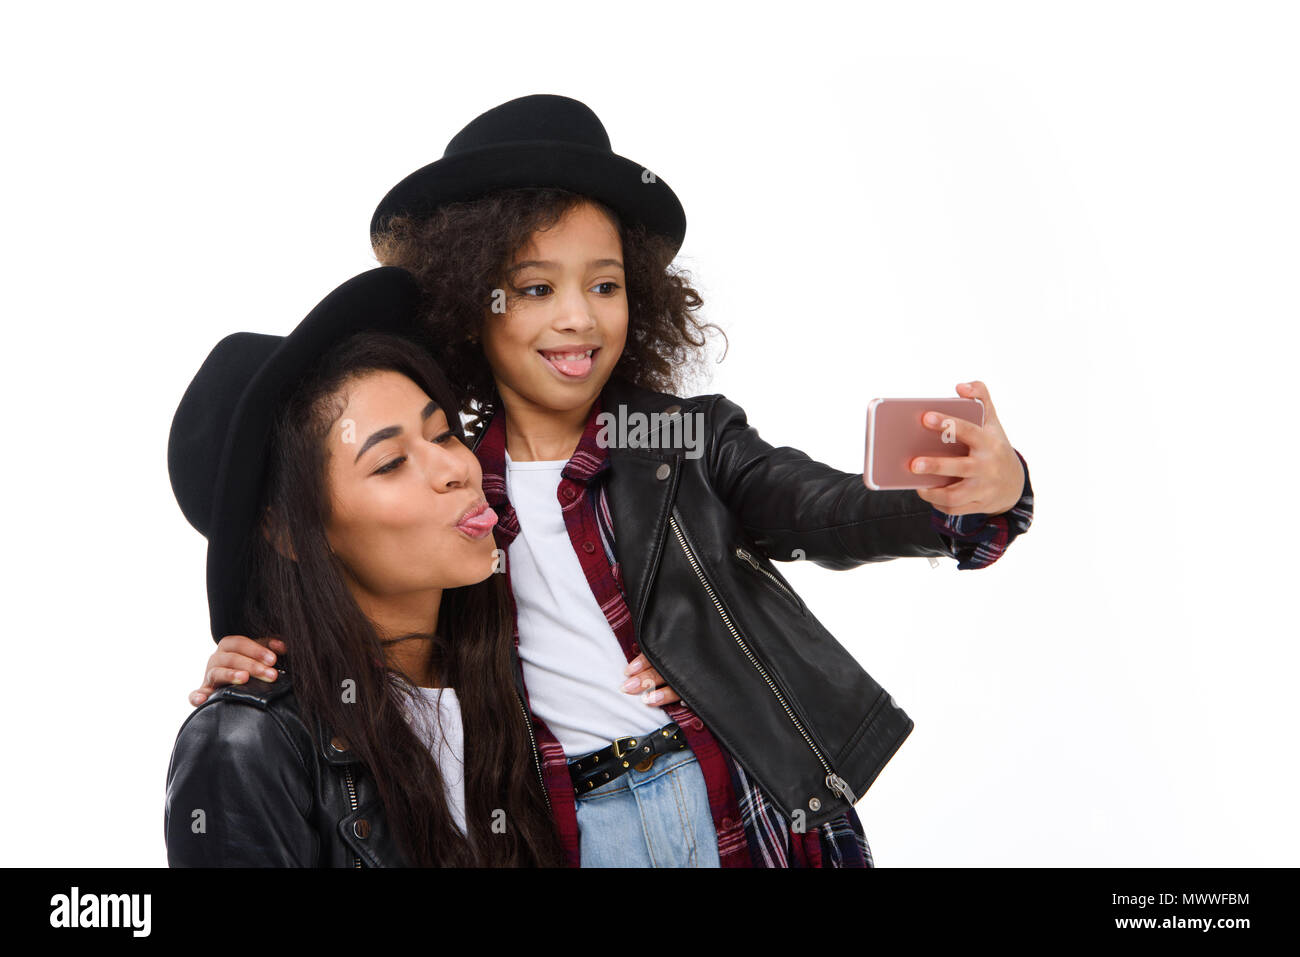 stylish mother and daughter taking selfie with smartphone and grimacing isolated on white - Stock Image